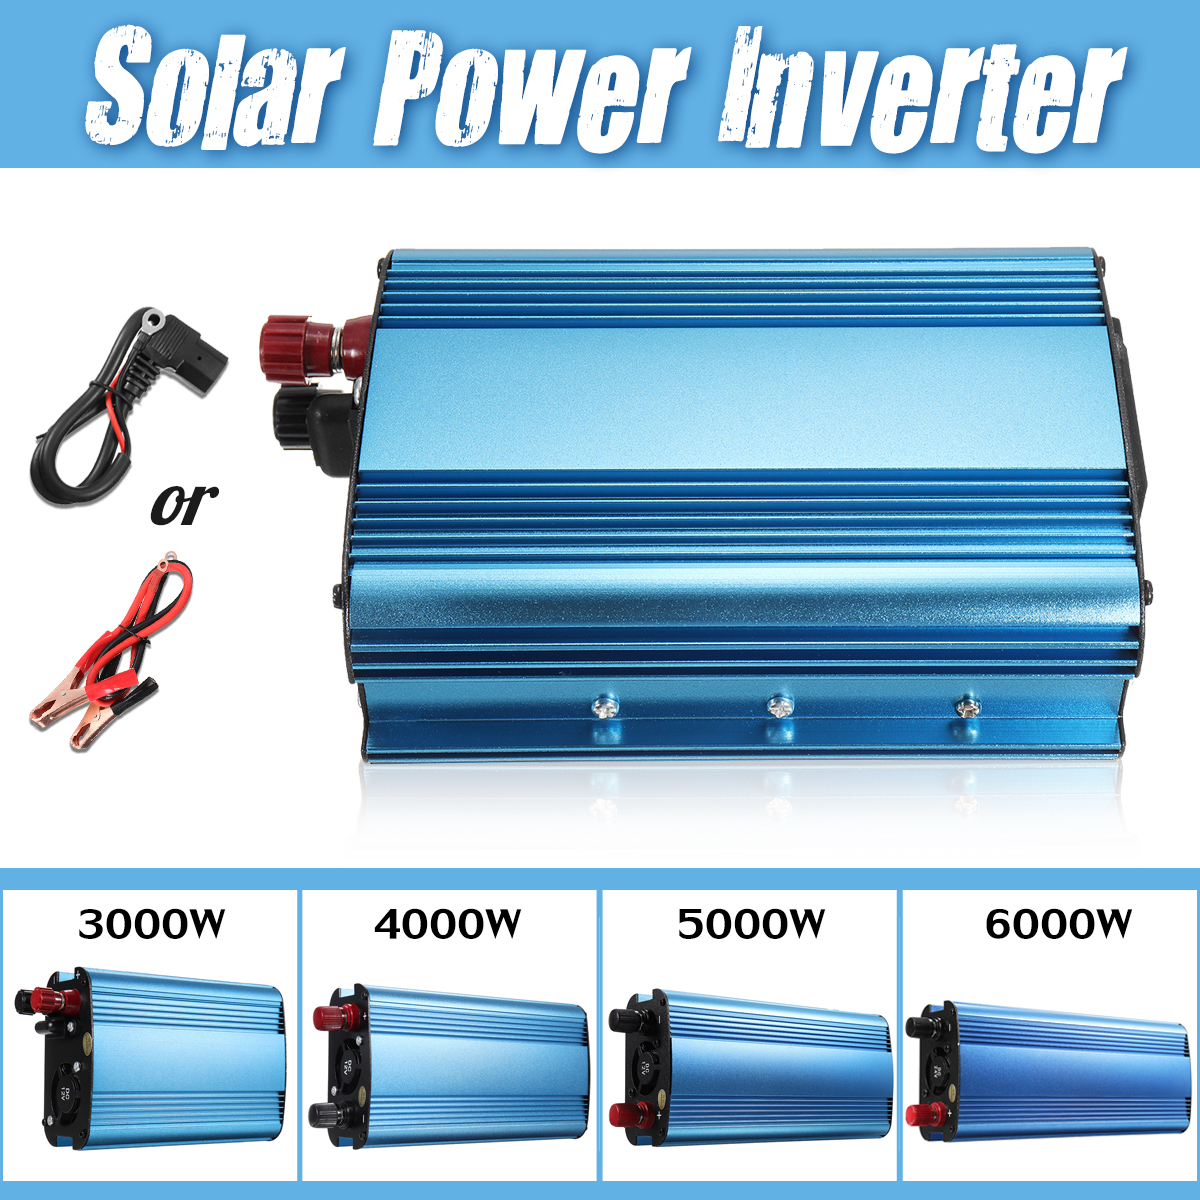 цена на 3000W/4000W/5000W/6000W Solar Power Inverter DC 12V/24V/48V/60V To AC 220V Sine Wave Car Inverter Charger Voltage Convertor